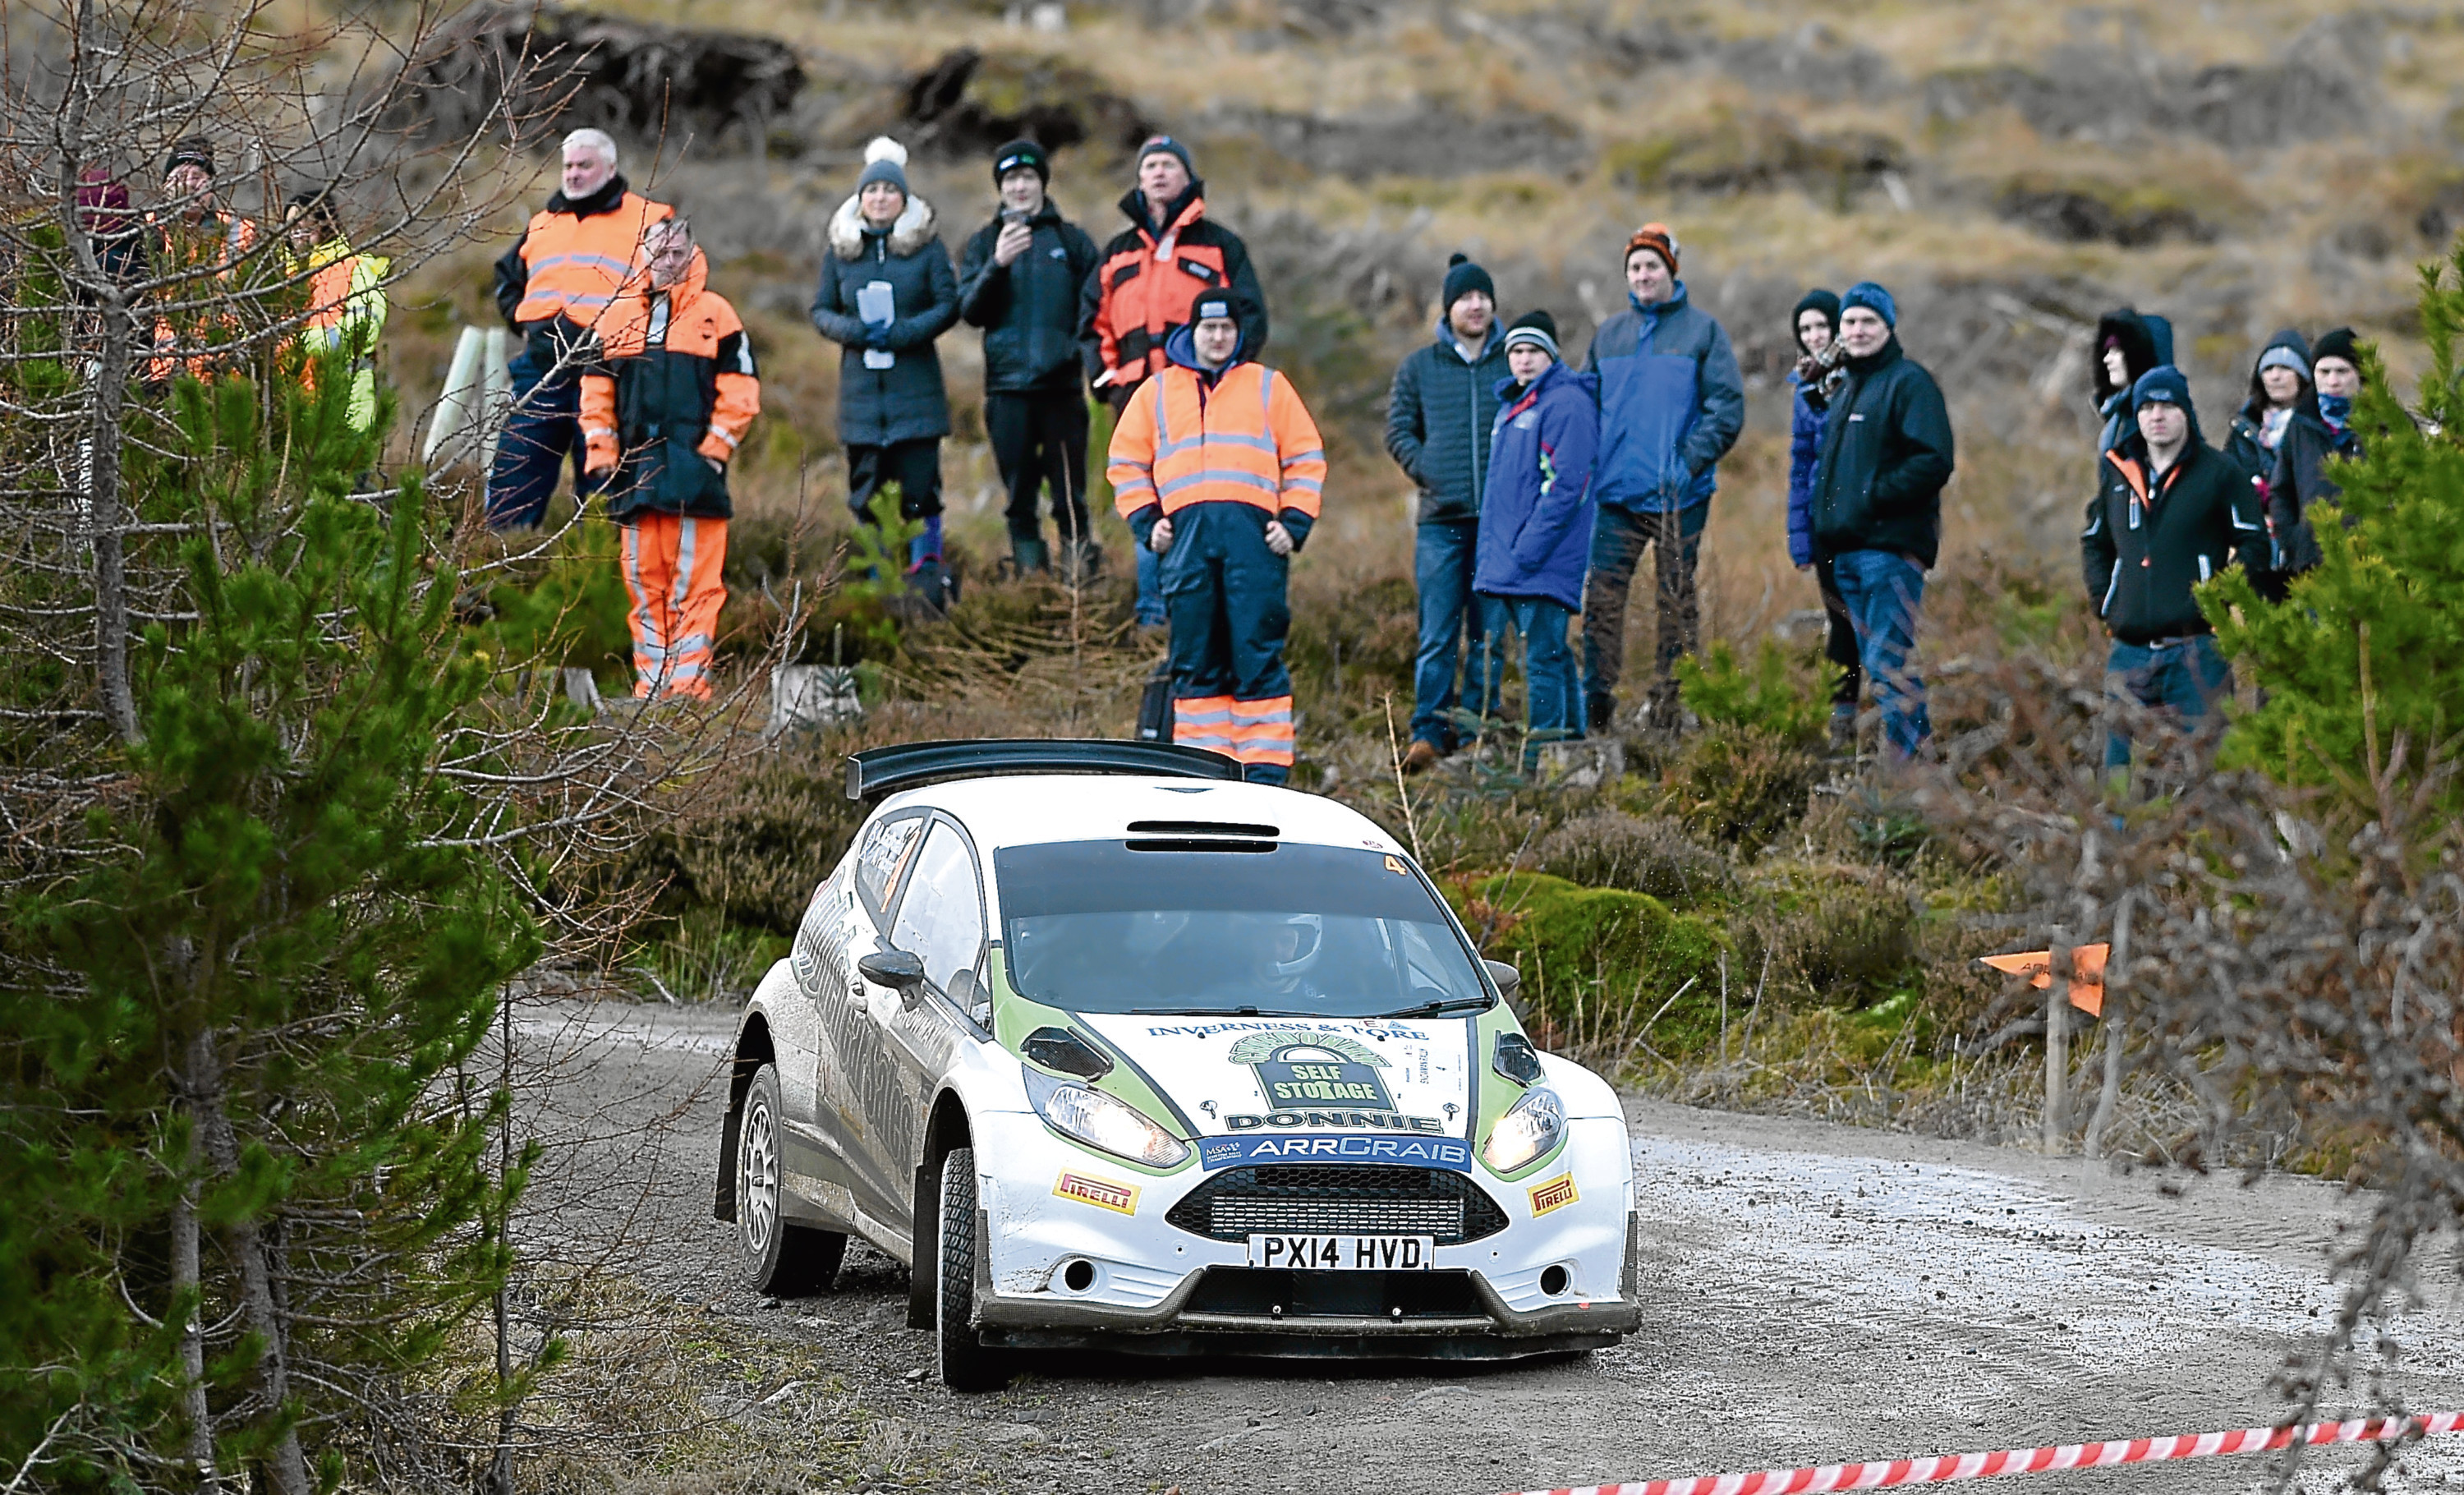 Picture by SANDY McCOOK  10th February '18 Highland Car Club, Snowman Rally.   Stage 1 Meall Mor. Donnie MacDonald and Andrew Falconer , both of Inverness who were third placed in the event.